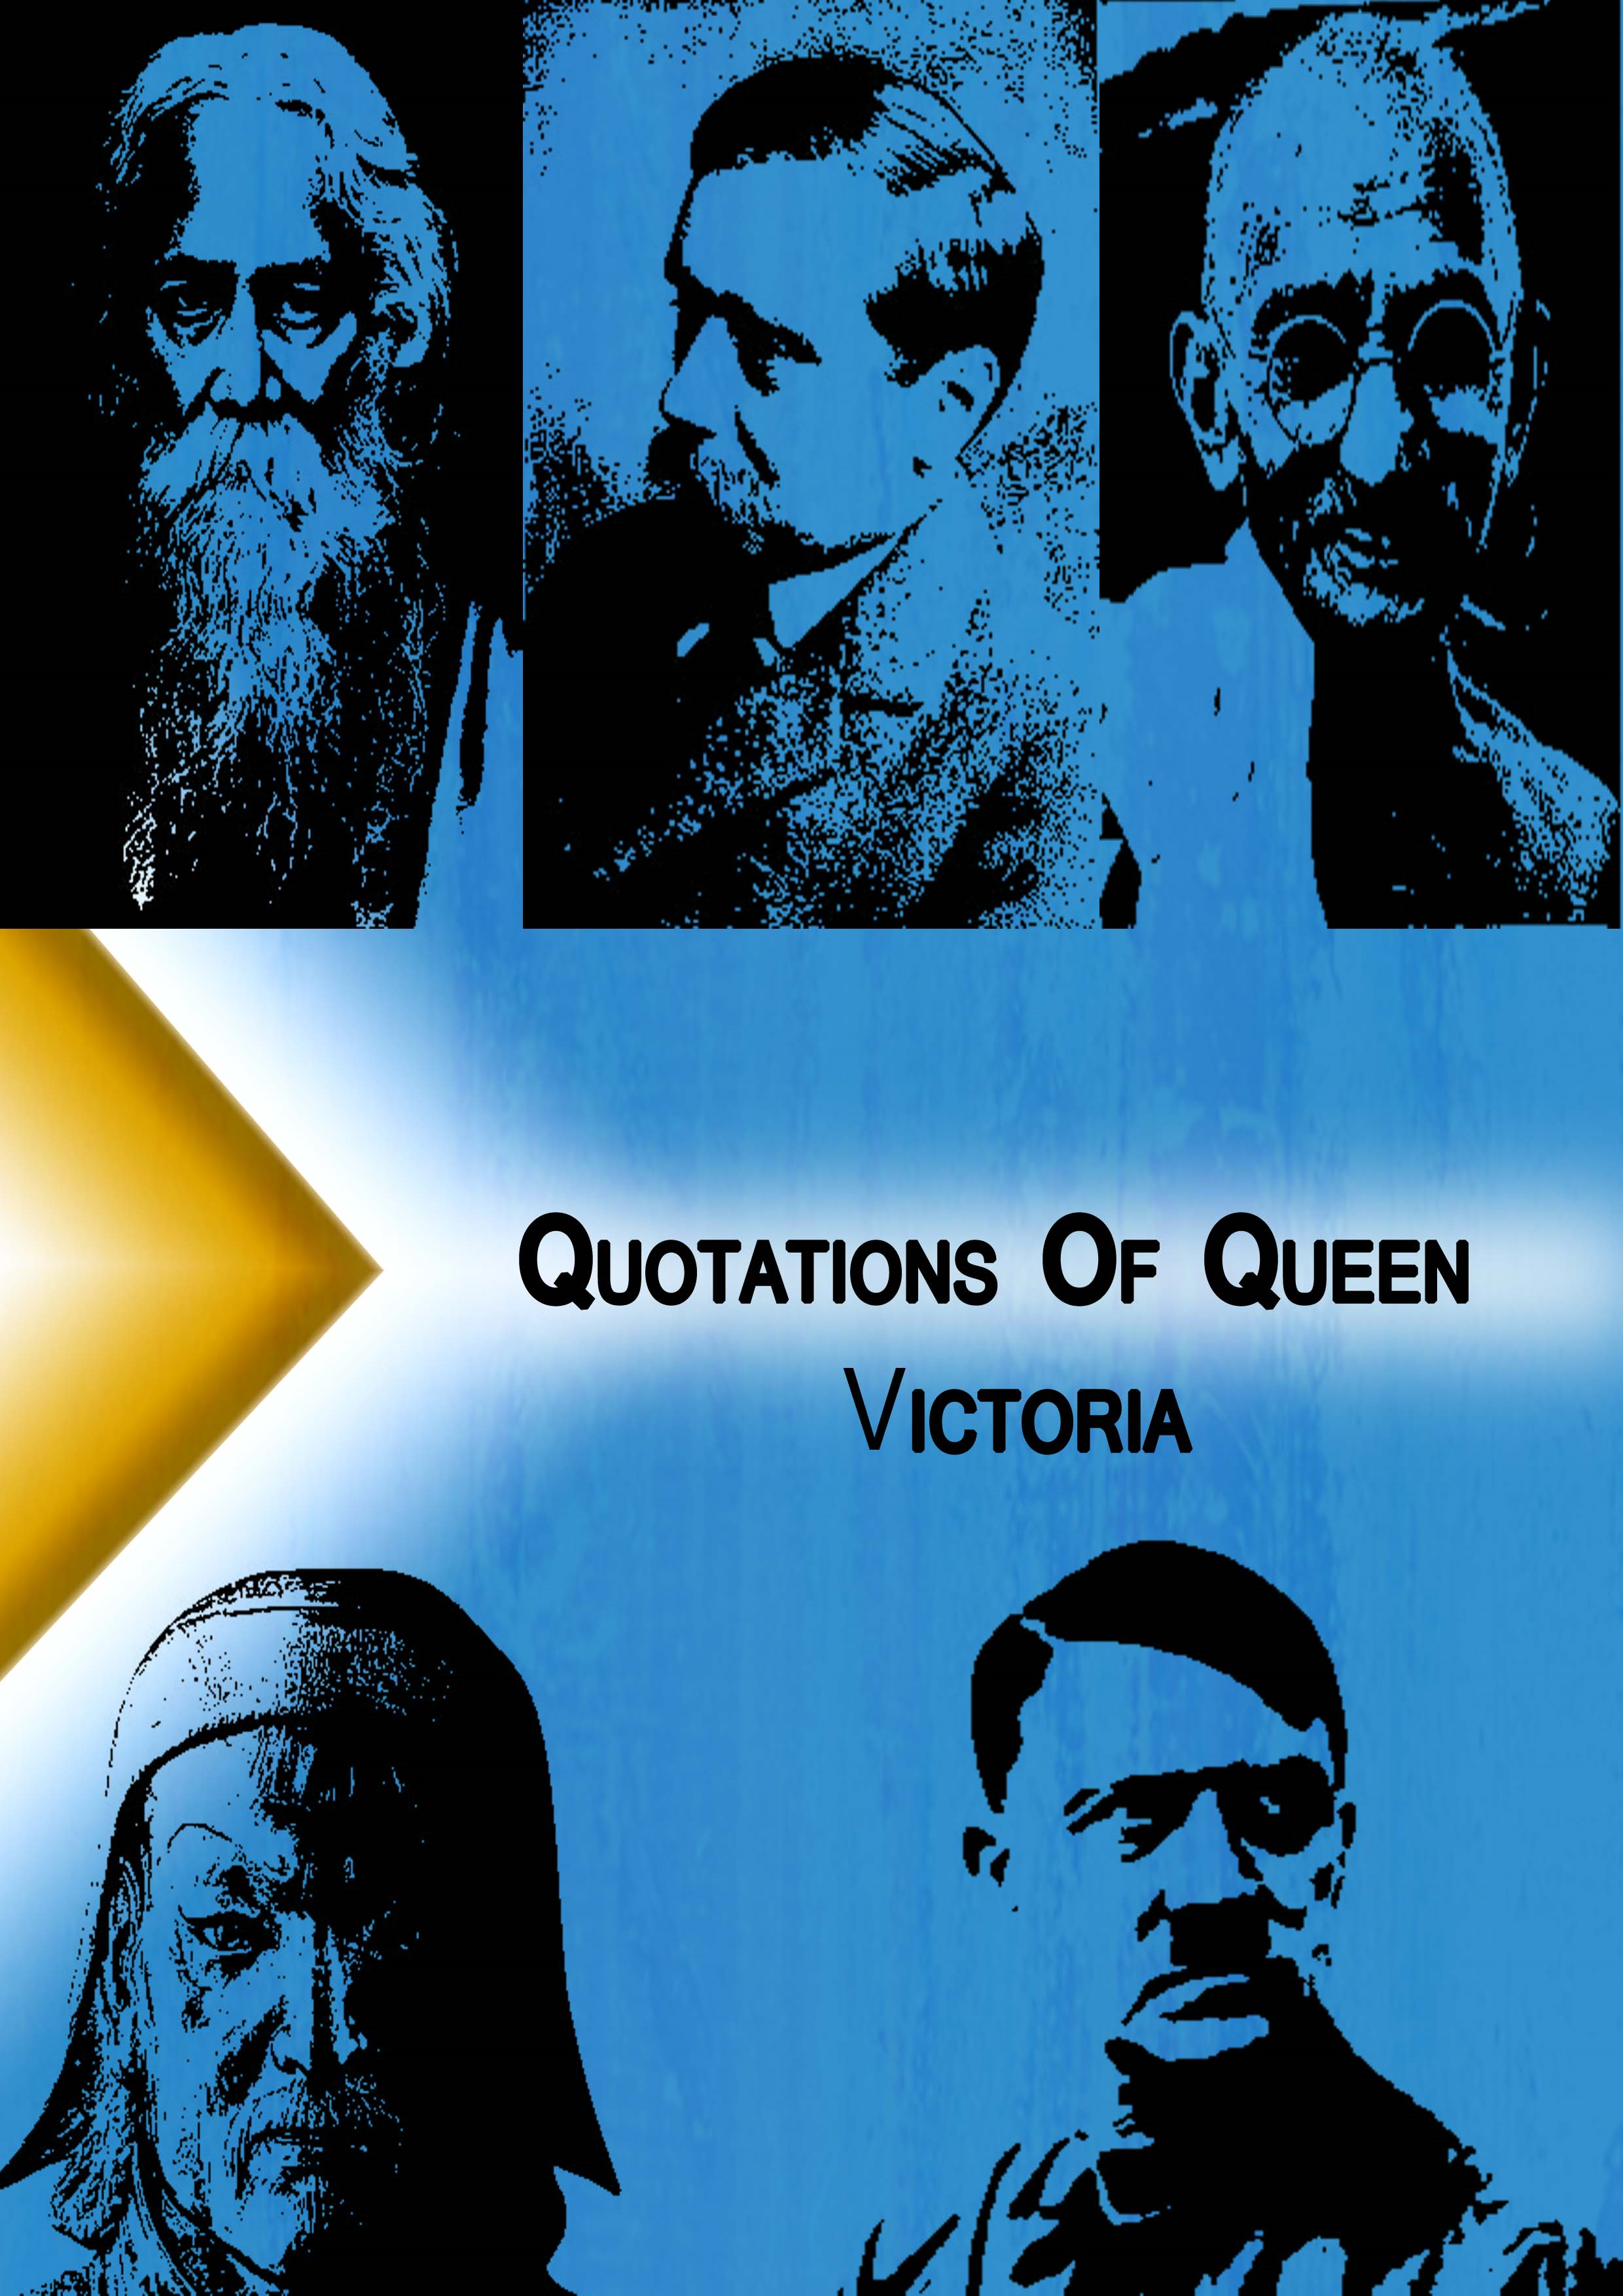 Qoutations from  Queen Victoria